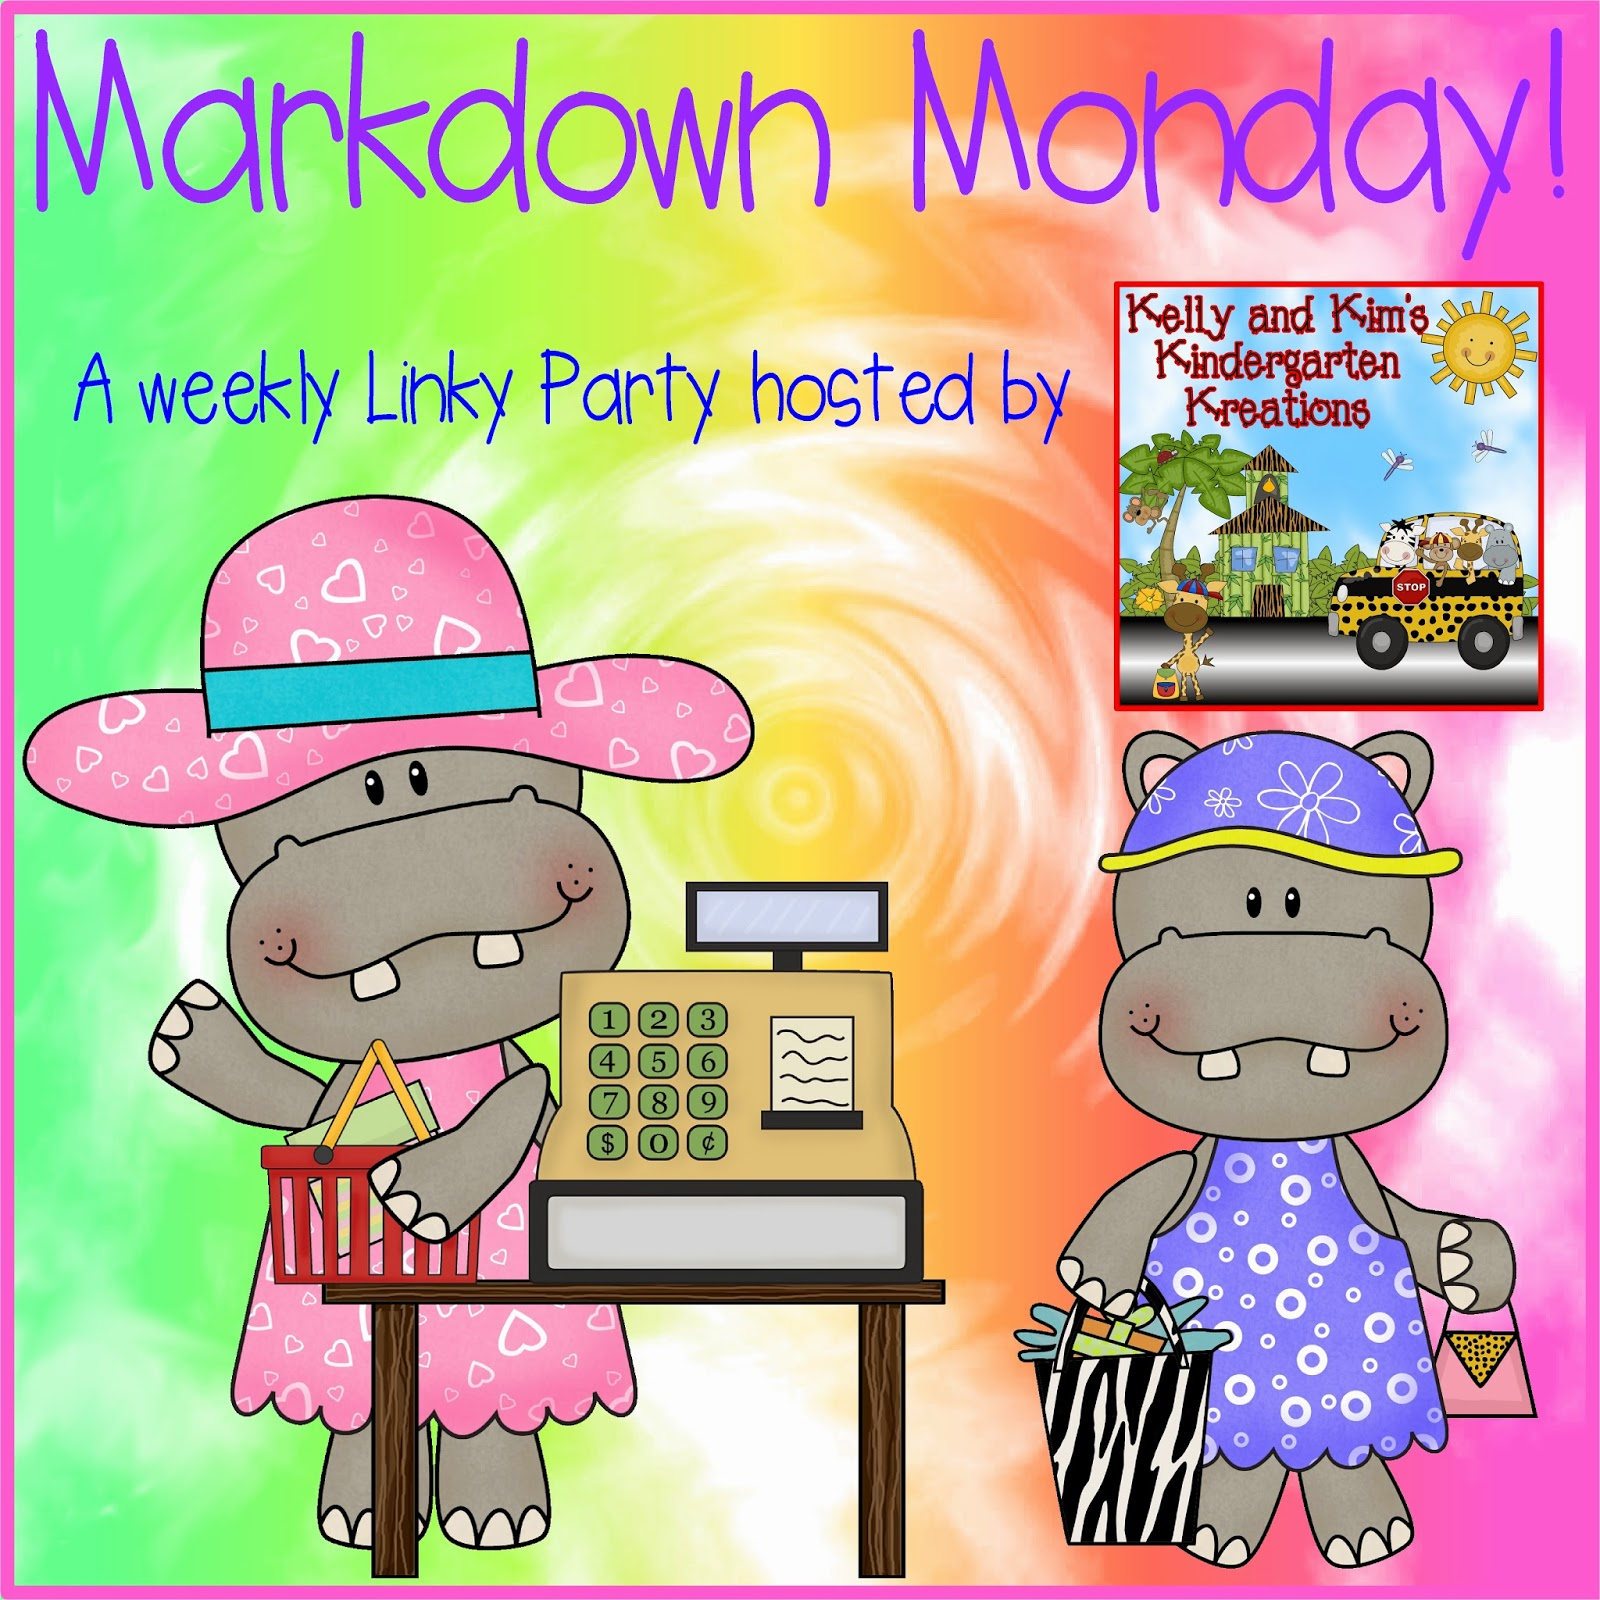 http://kellyandkimskindergarten.blogspot.com/2014/09/markdown-monday-linky-party-september_21.html